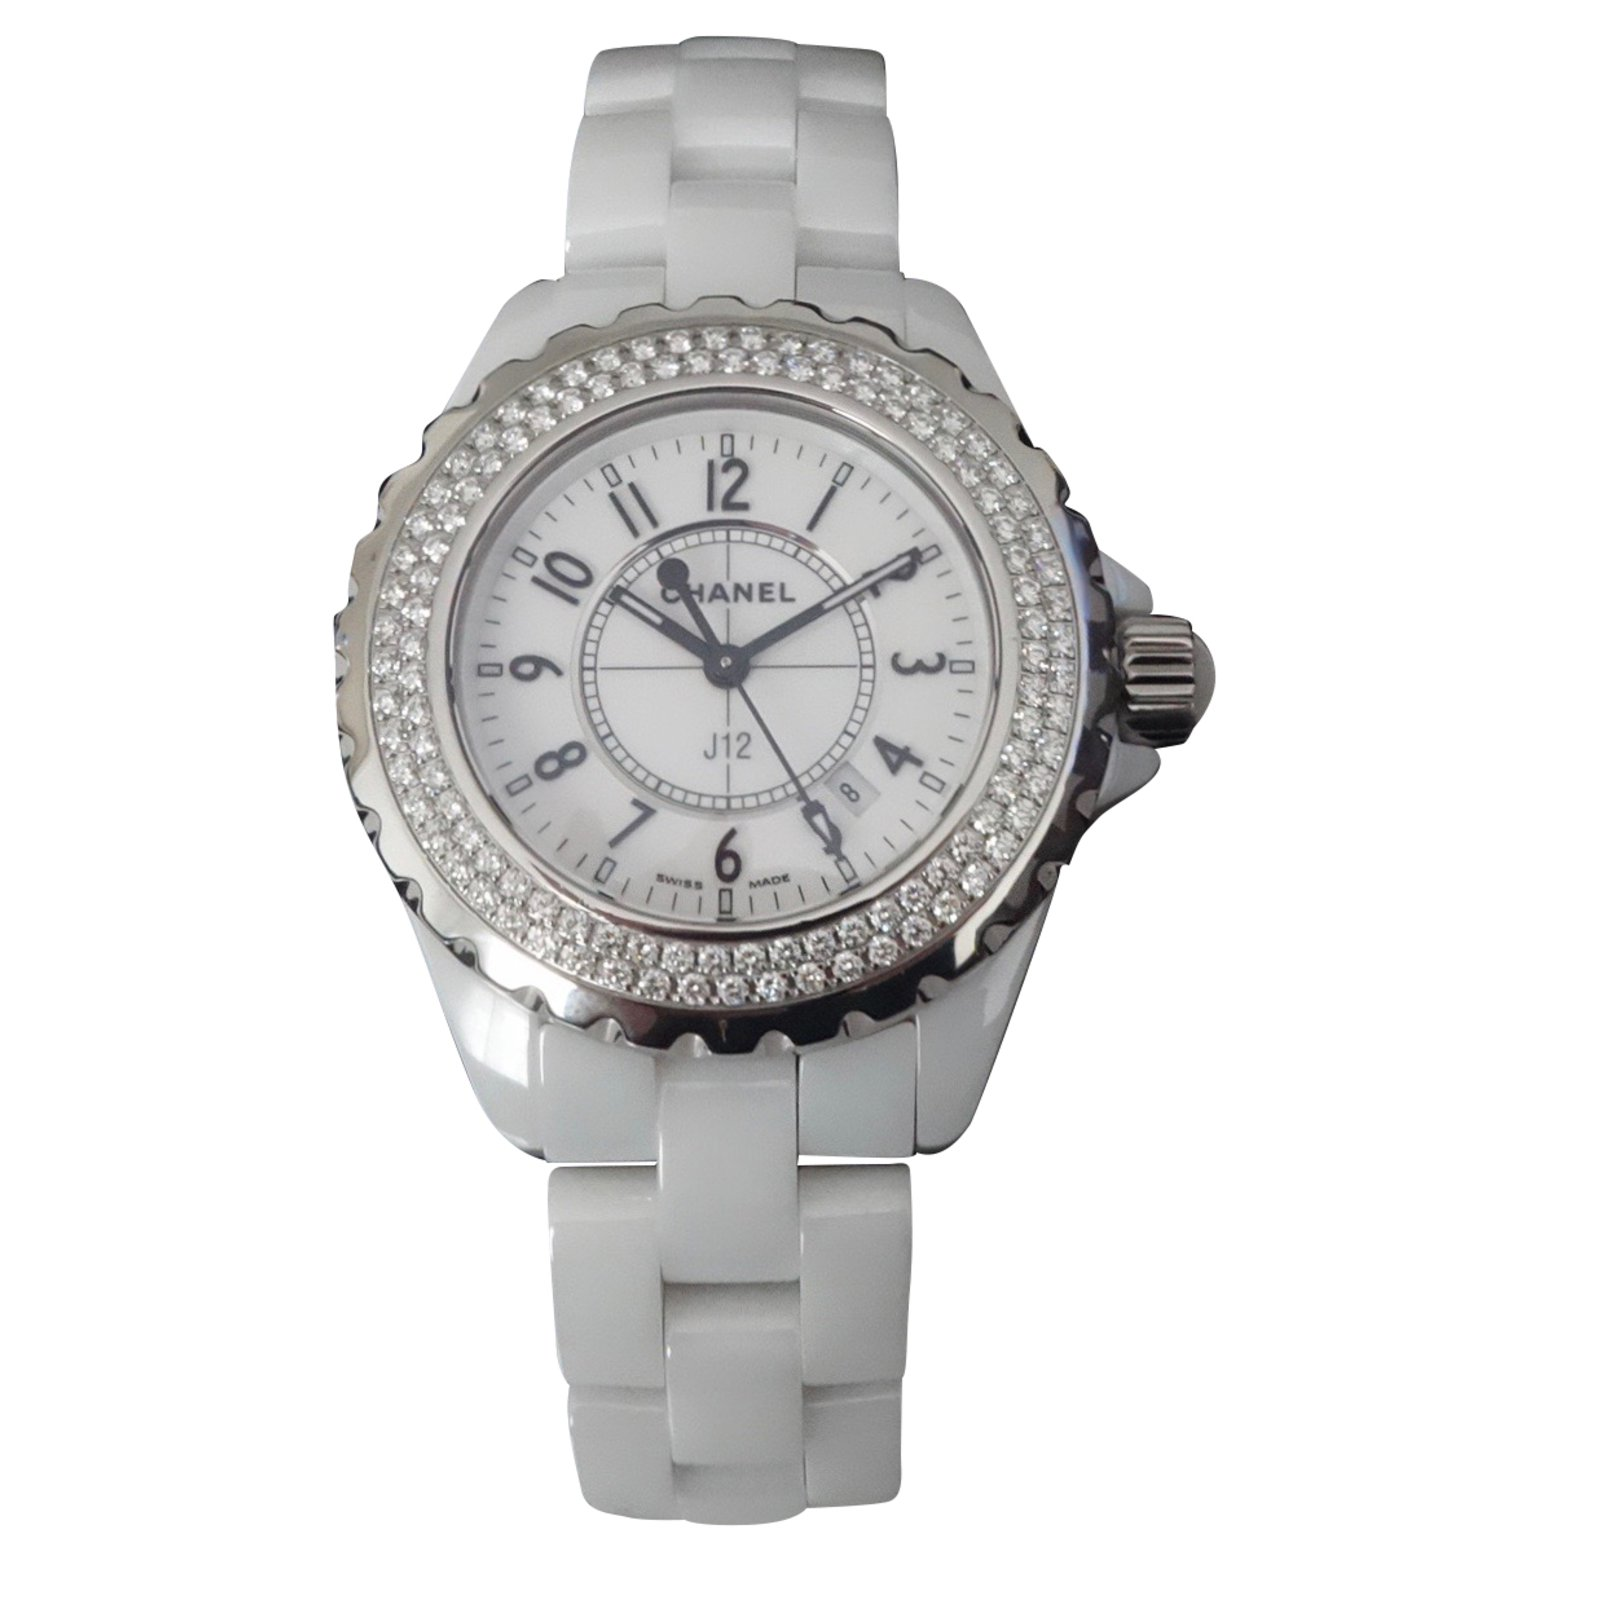 white designer bgcolor pad chanel watches mm online buy mode reebonz myanmar fff men